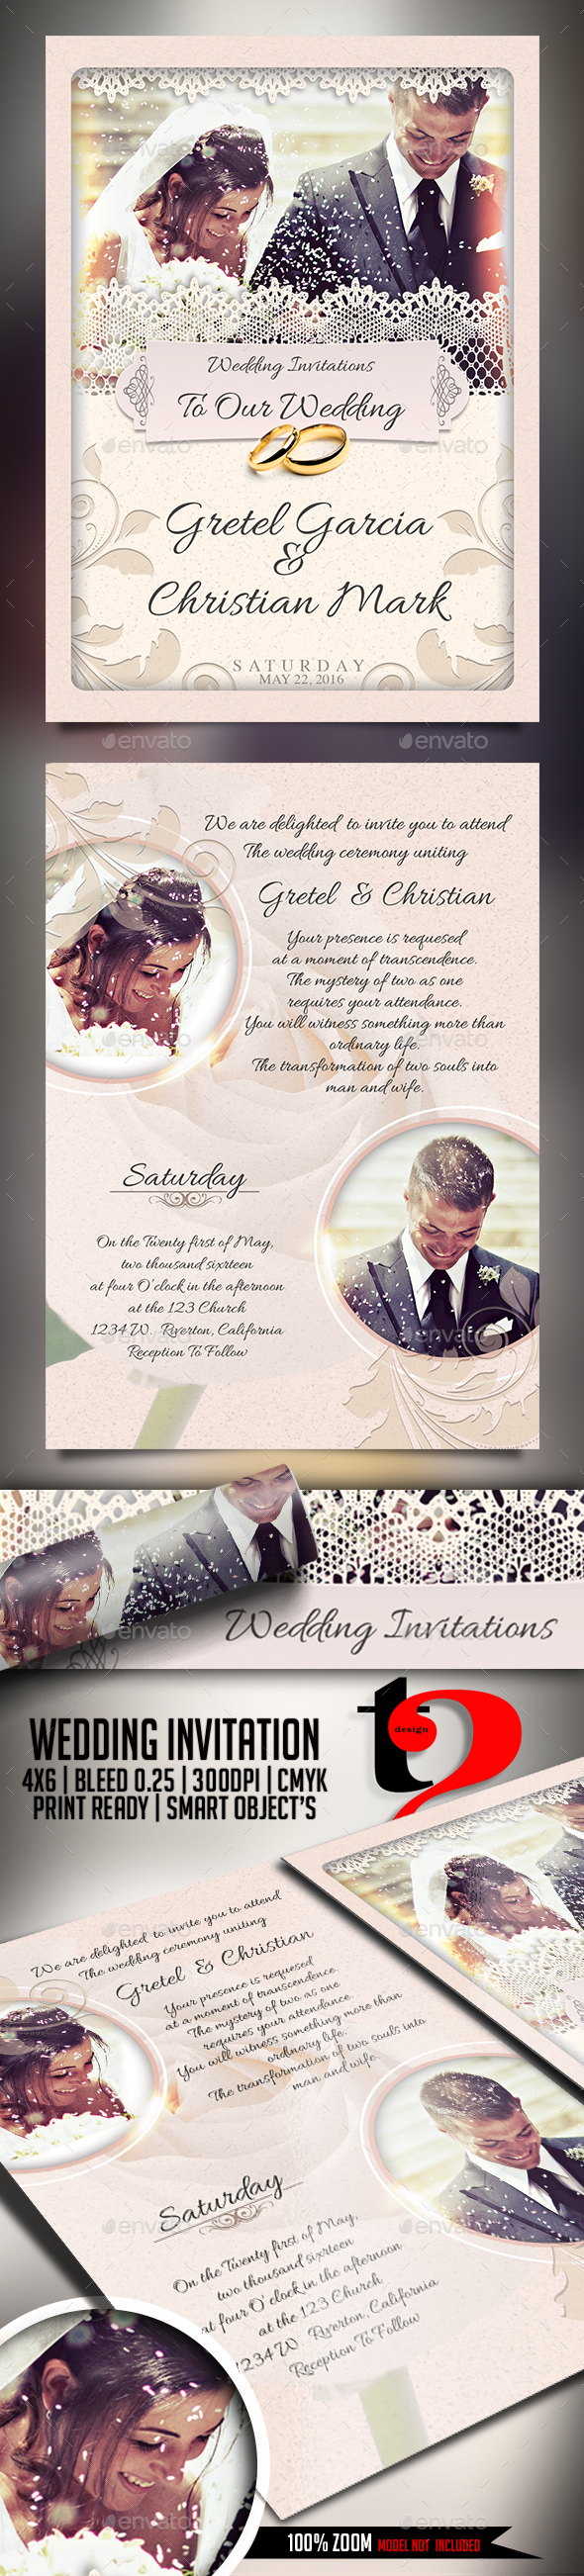 The Wedding Invitation - Weddings Cards & Invites